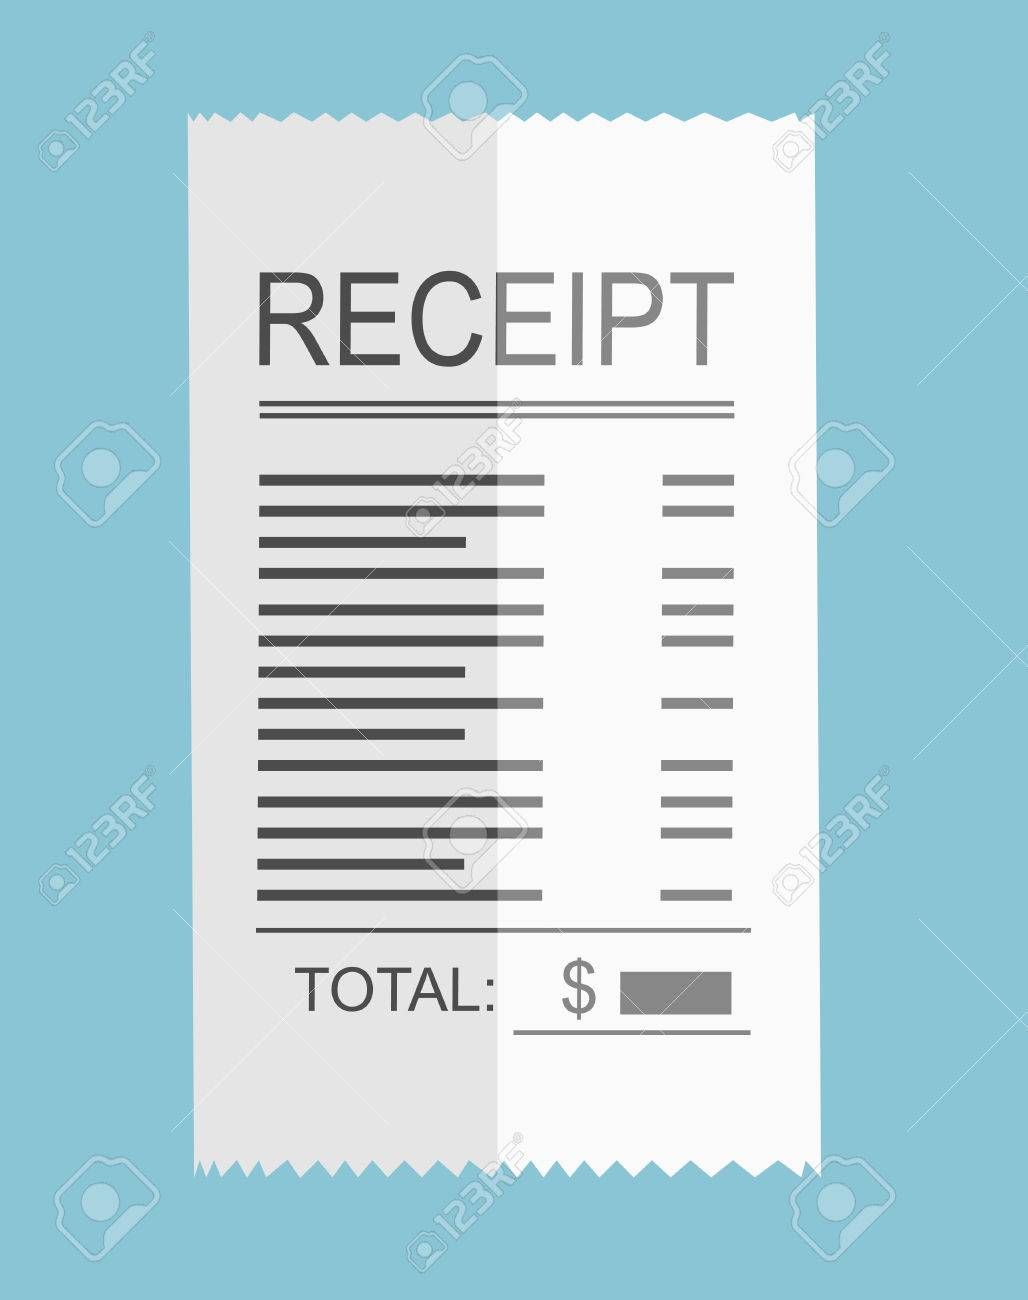 receipt icon flat design royalty free cliparts vectors and stock